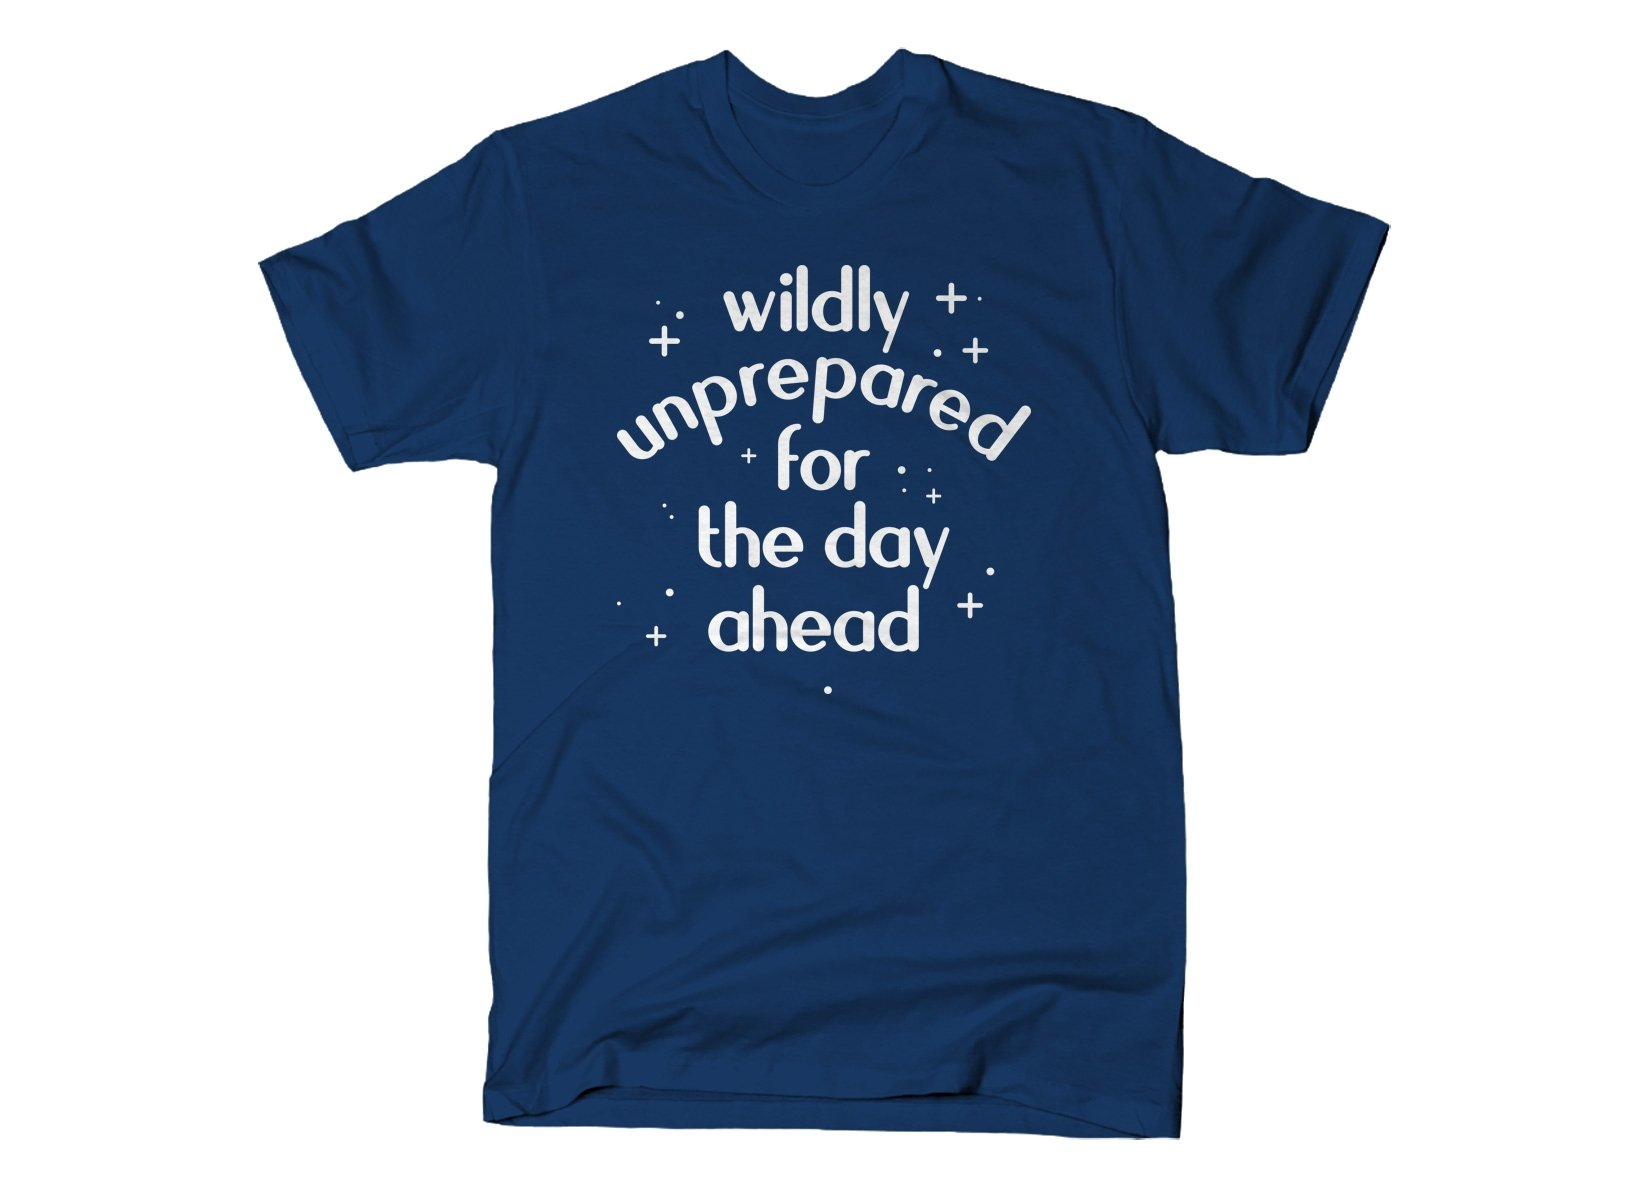 Wildly Unprepared For The Day Ahead on Mens T-Shirt